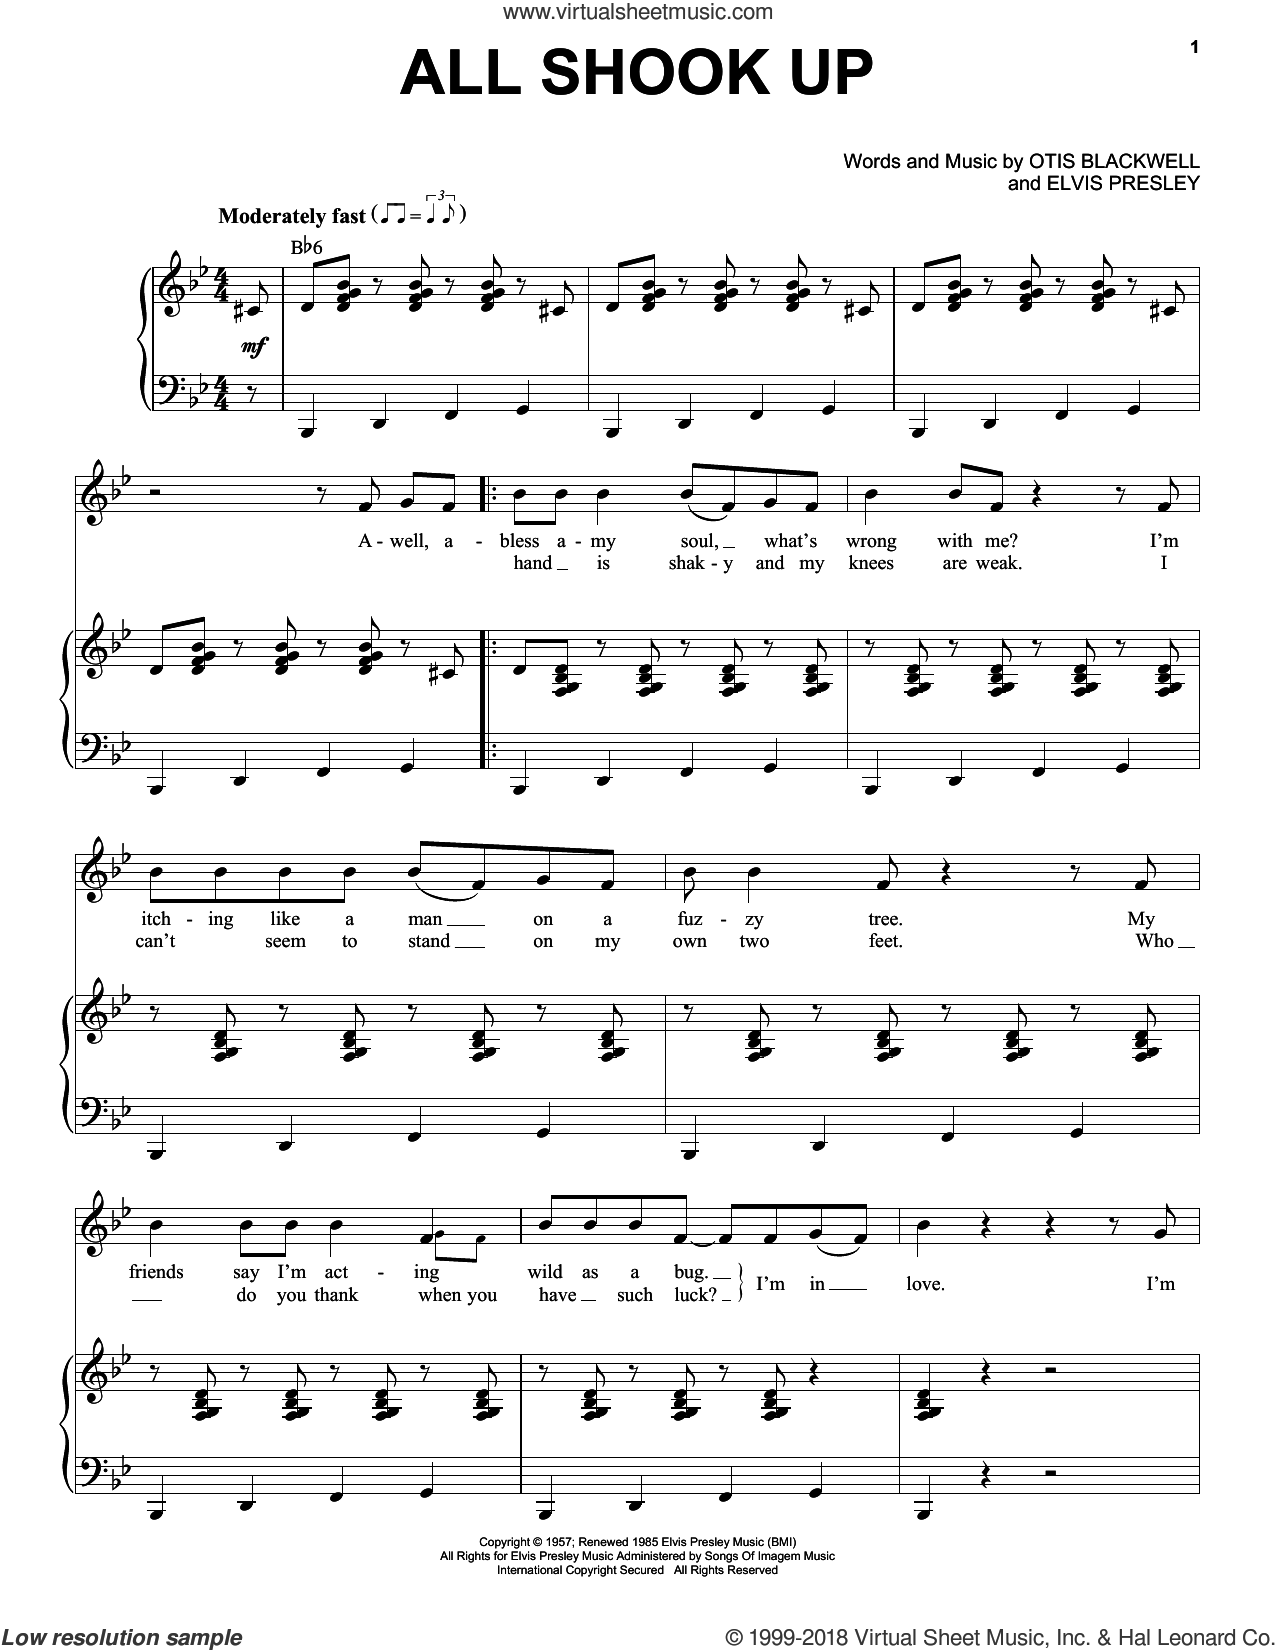 All Shook Up sheet music for voice and piano by Elvis Presley, Suzi Quatro and Otis Blackwell, intermediate skill level